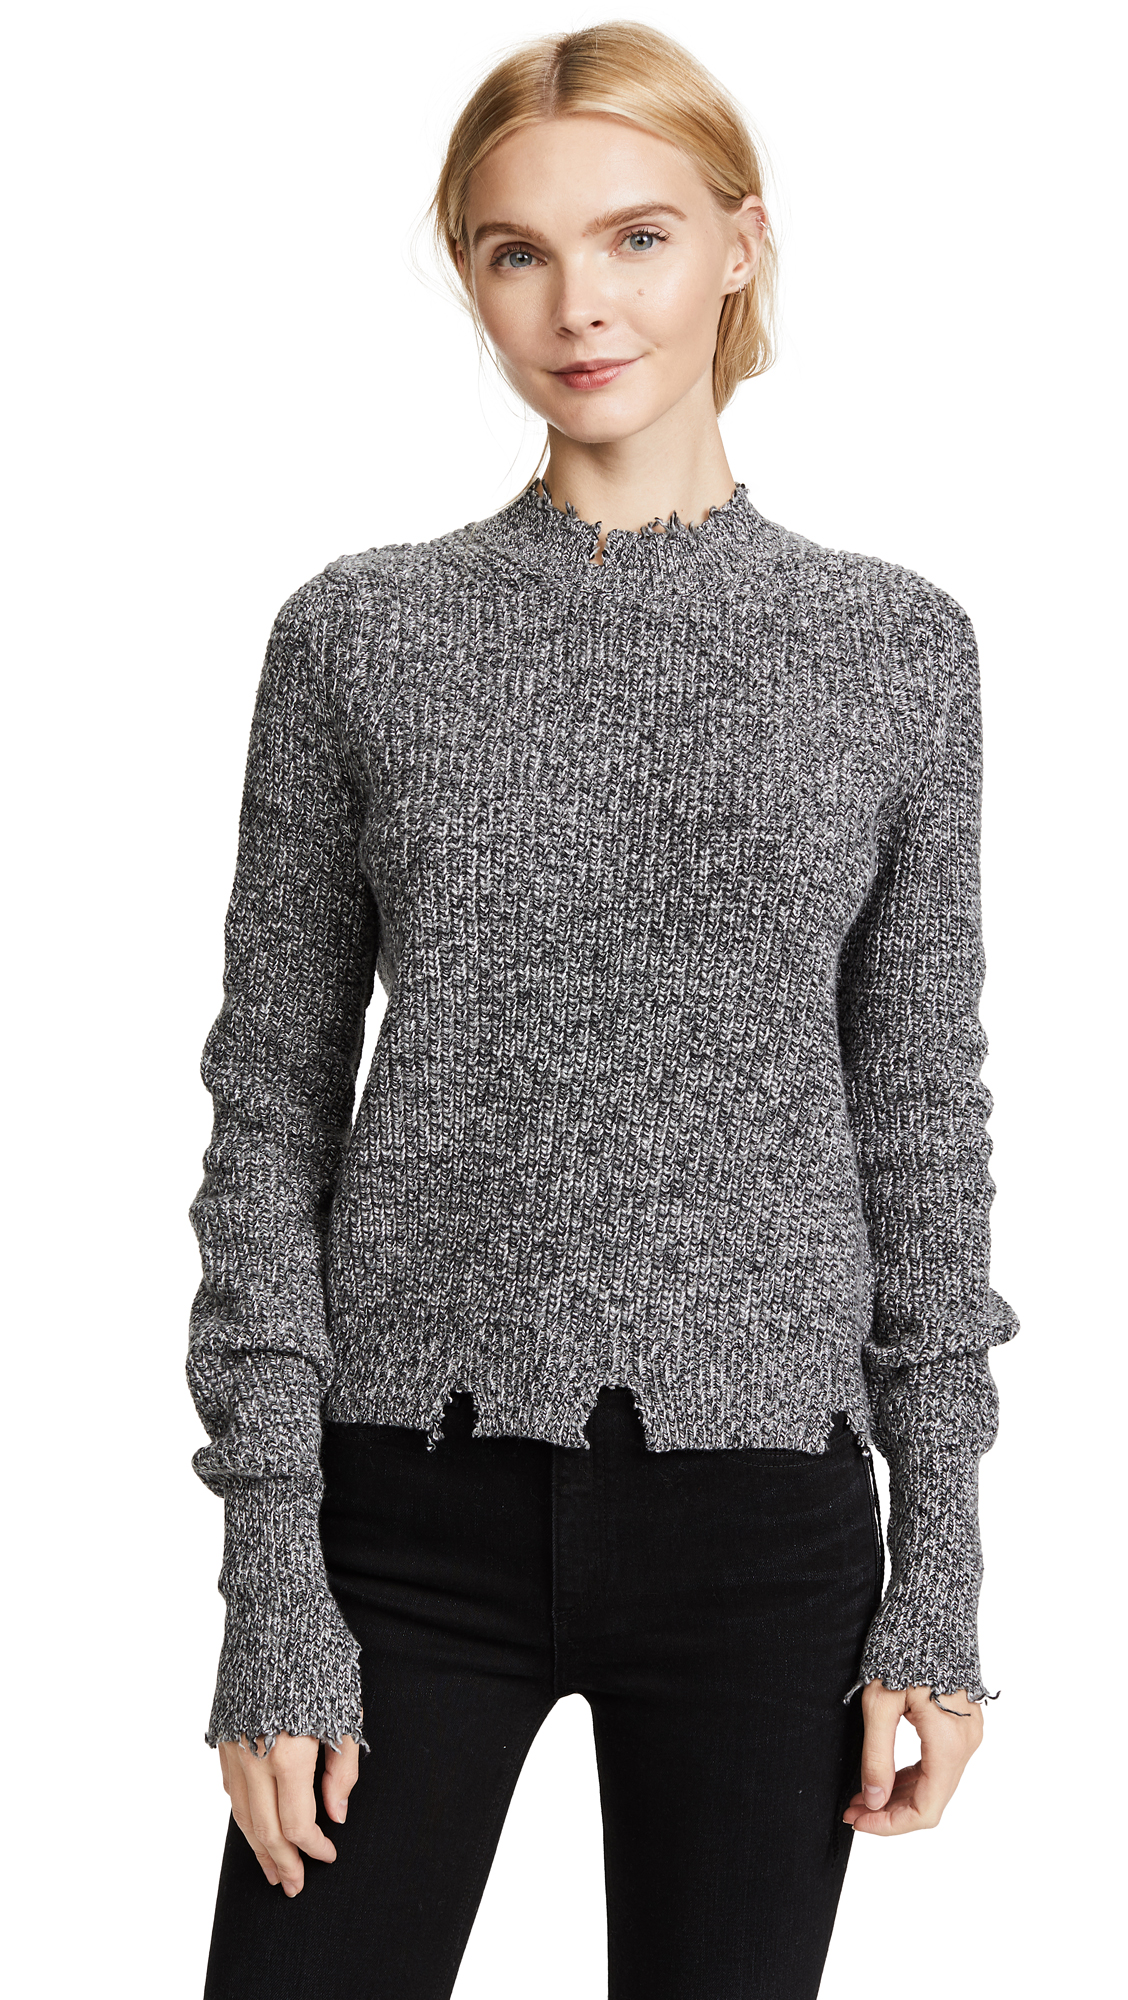 Helmut Lang Crew Neck Sweater - Charcoal